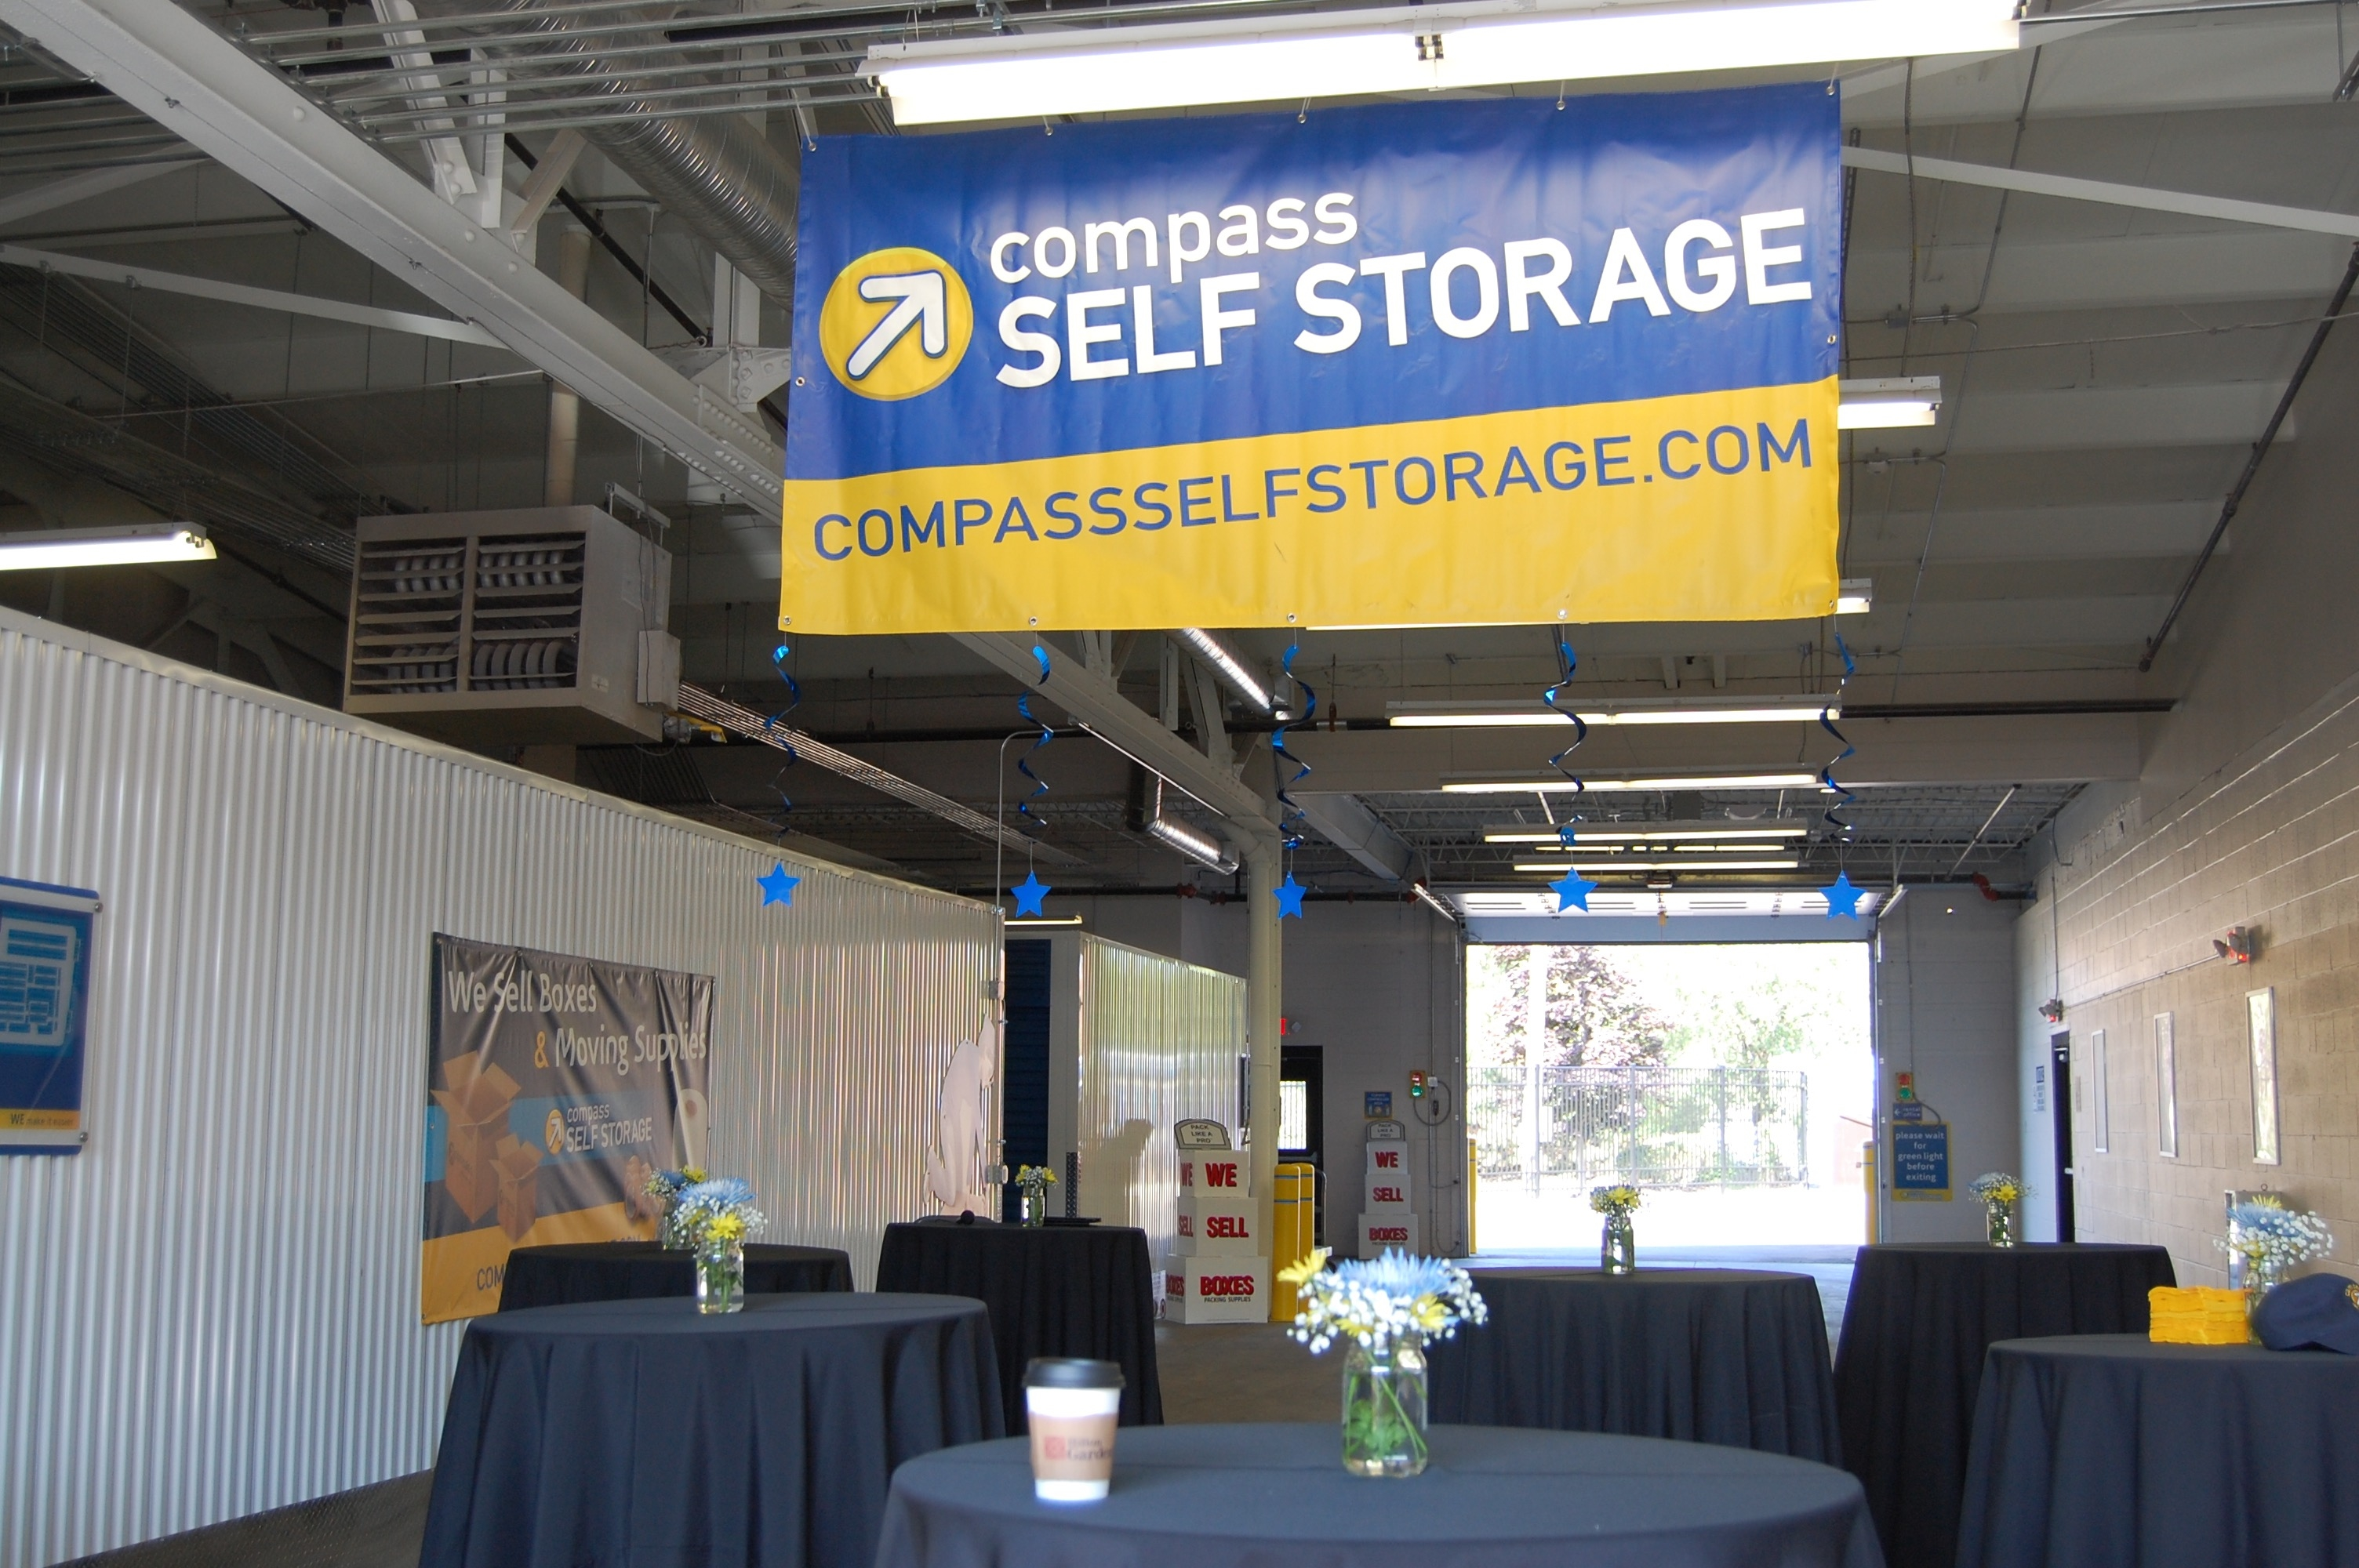 Compass Self Storage image 2